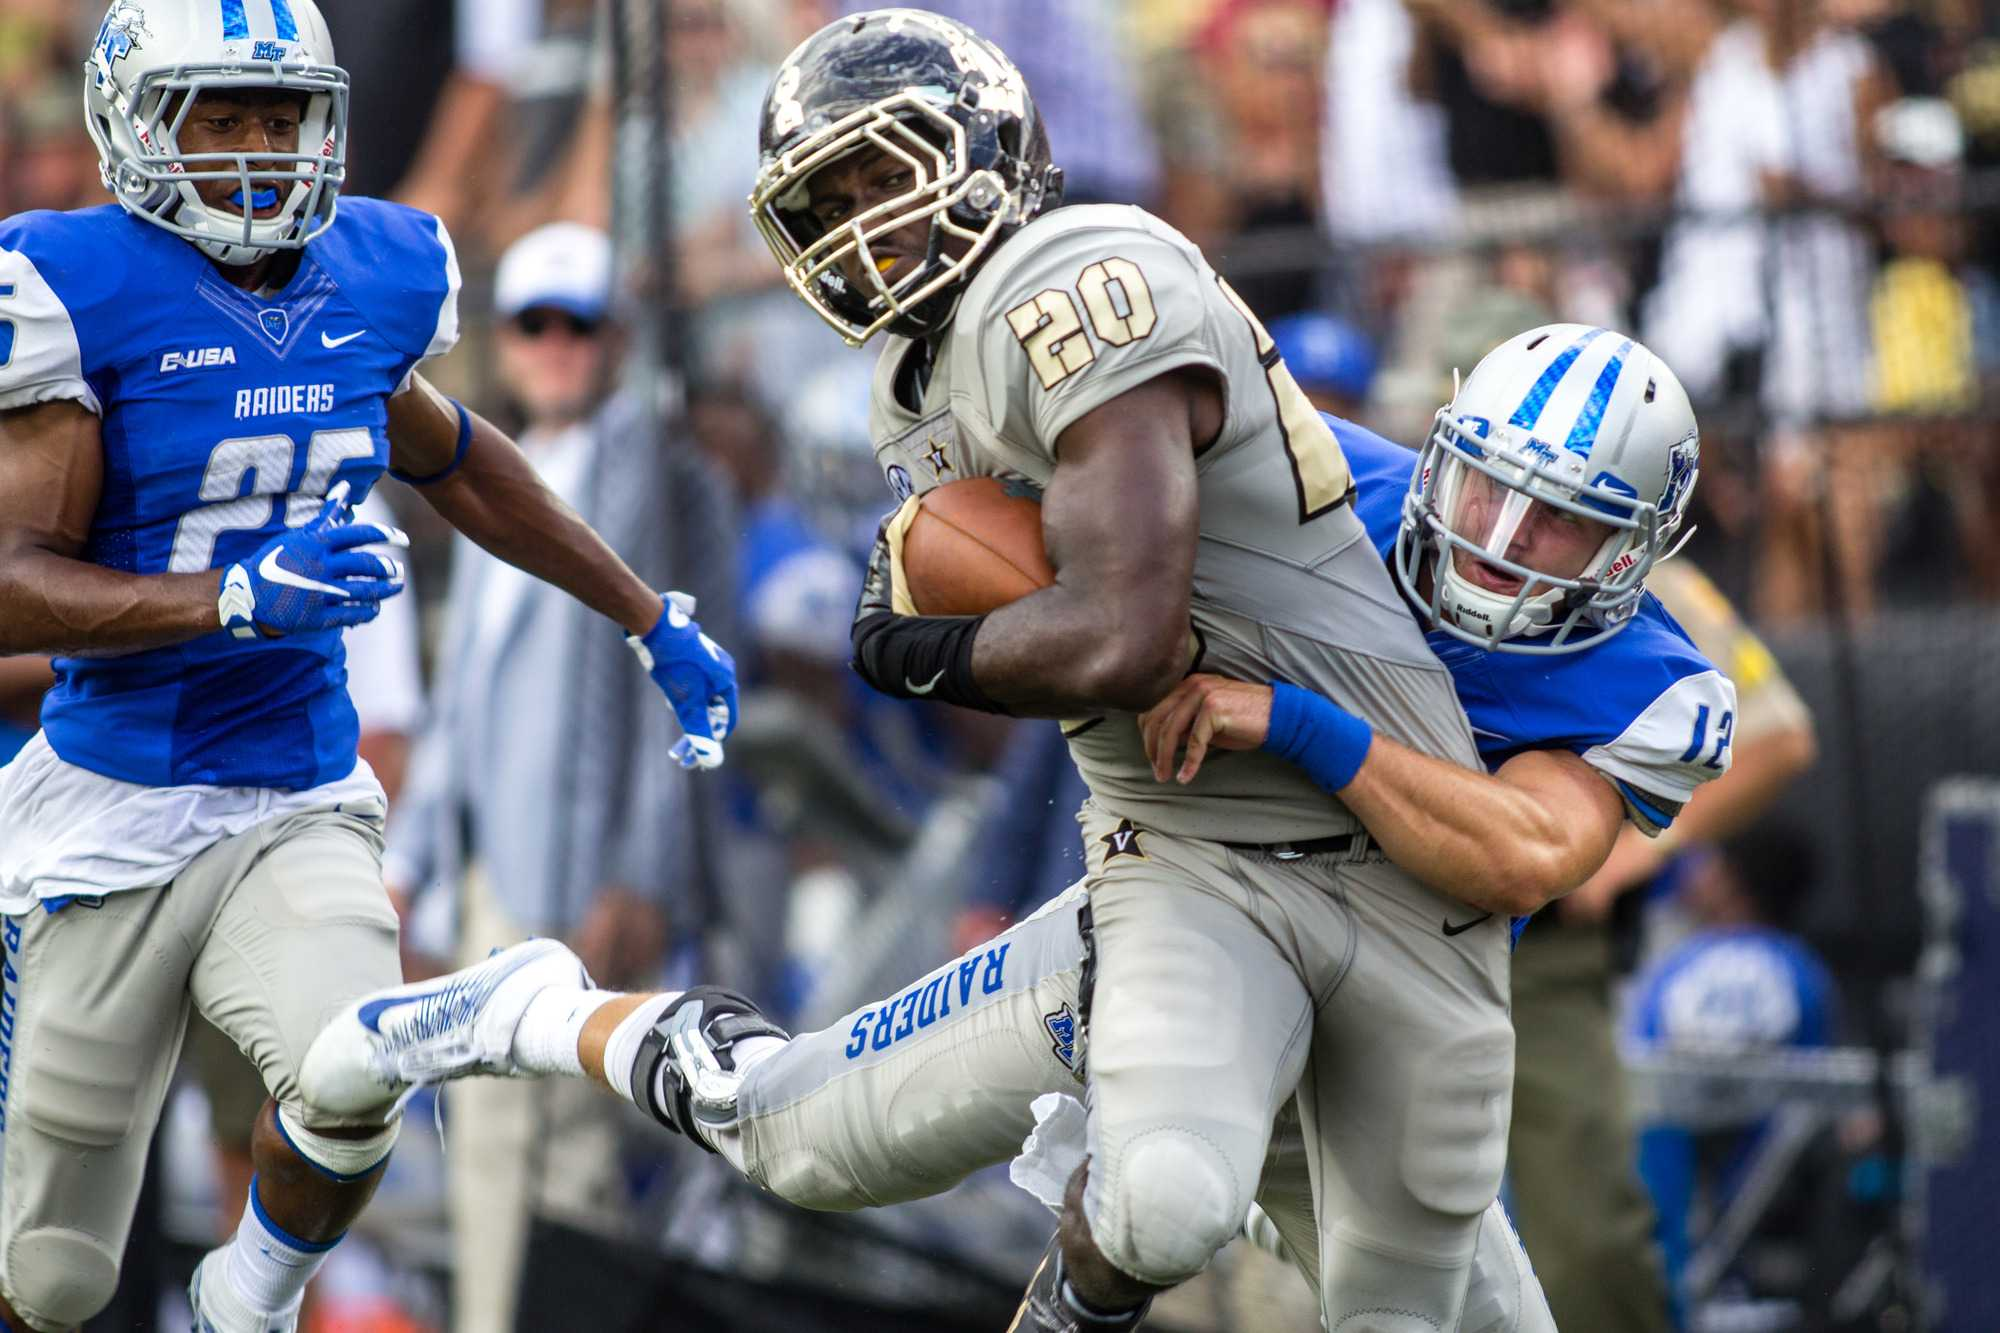 September 10th, 2016 – Oren Burks (20) returns an interception during the Commodores' 47-24 win against MTSU Saturday afternoon at Vanderbilt Stadium.